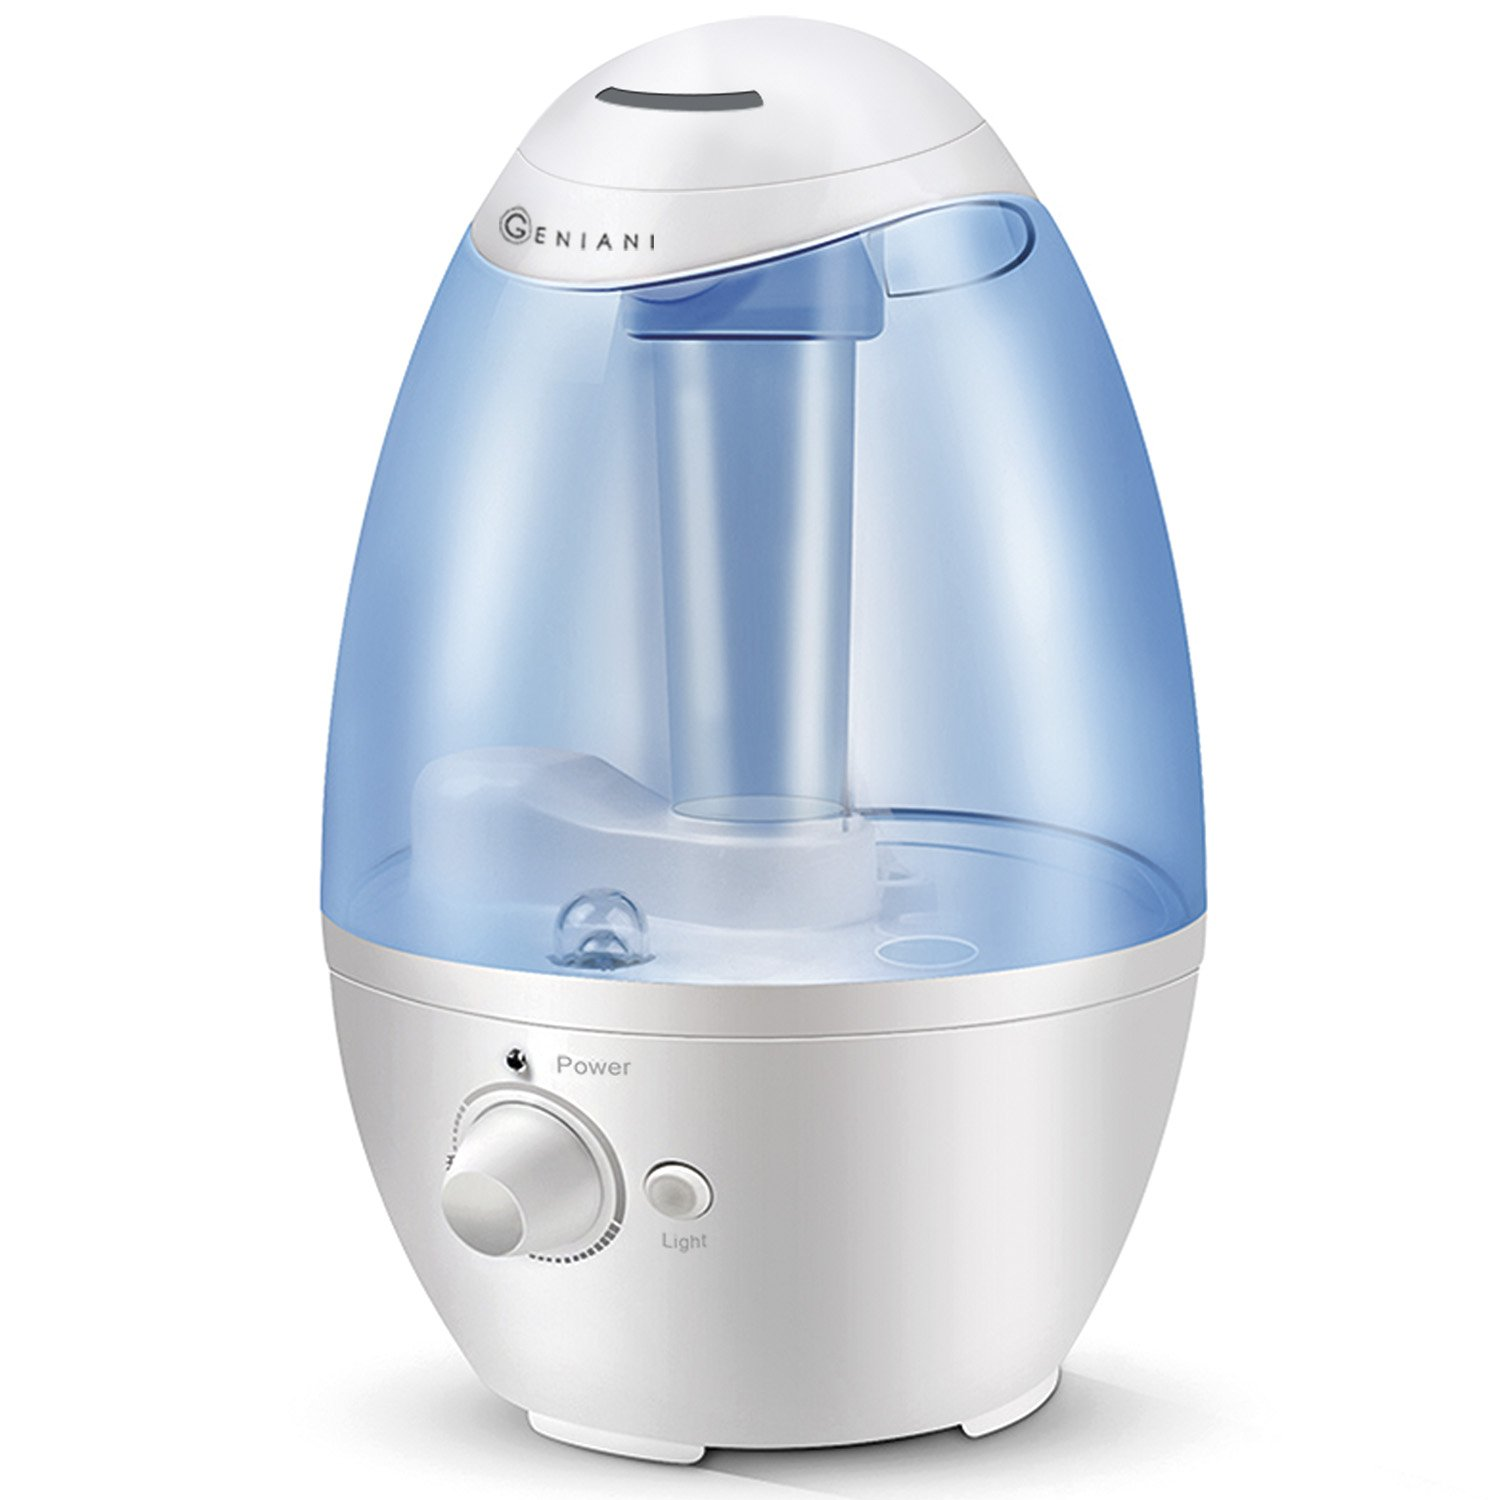 GENIANI Ultrasonic Humidifier Review